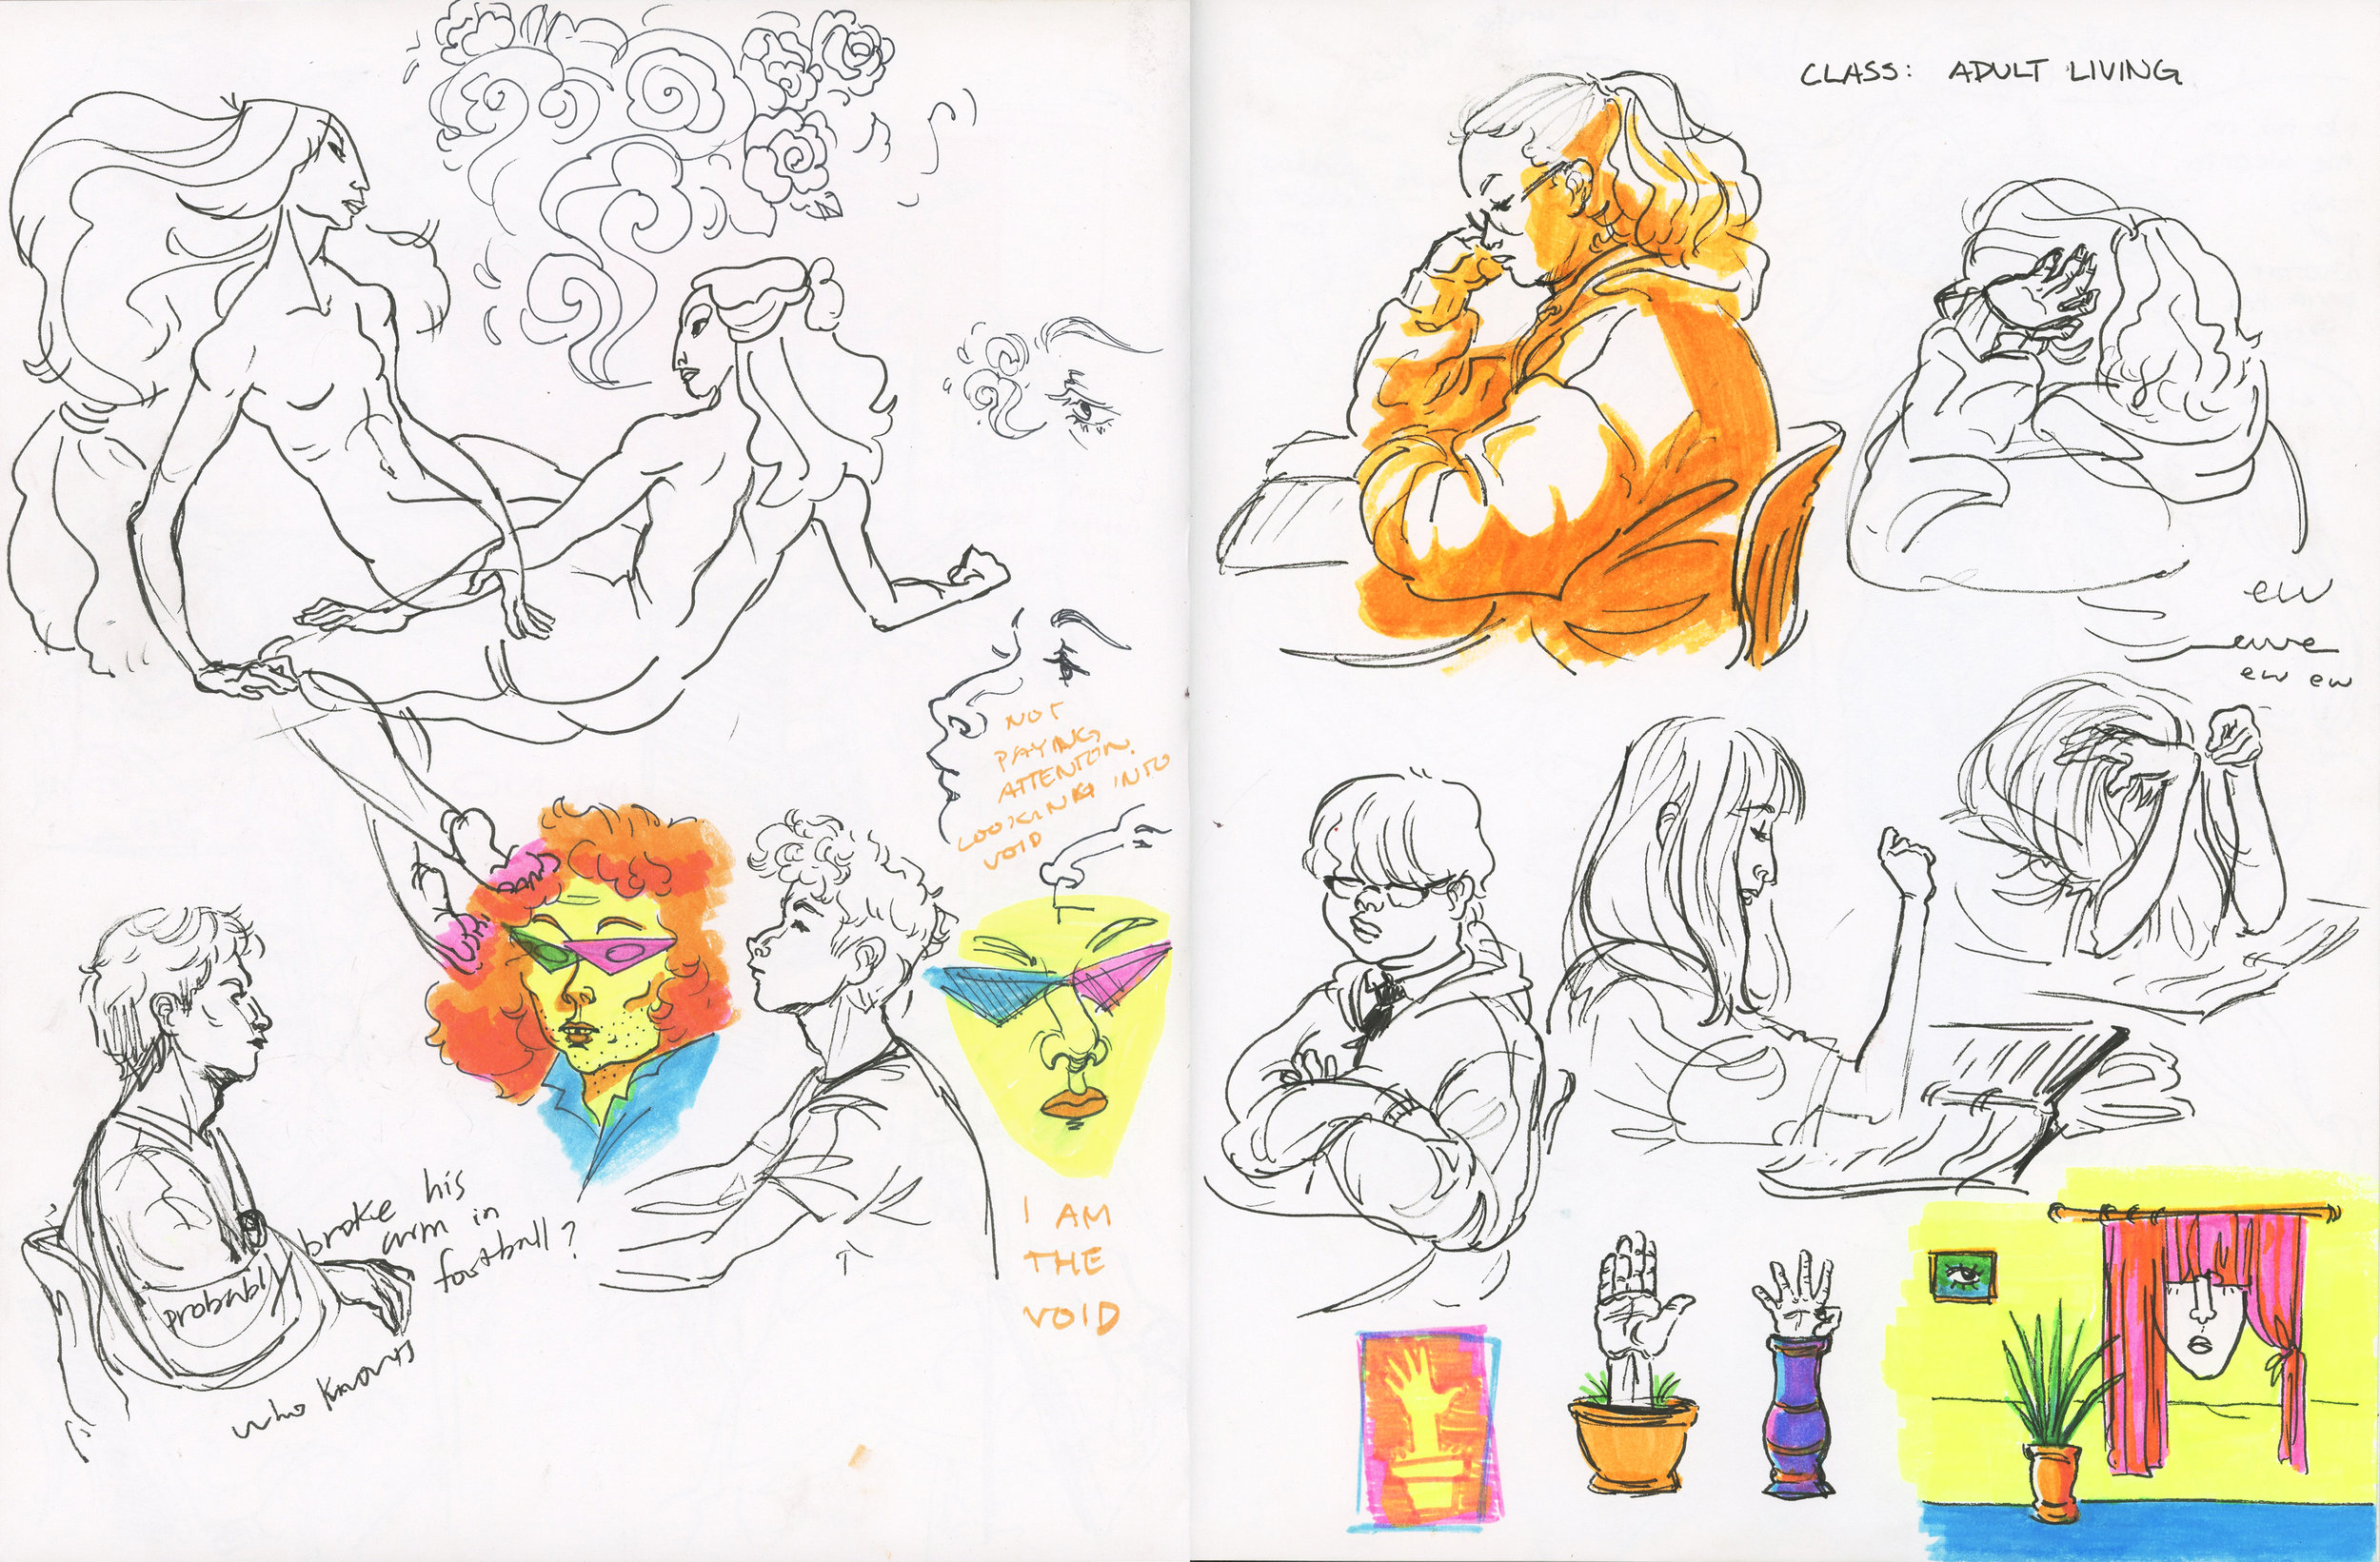 Sketchbook_pgs_31,32.jpg